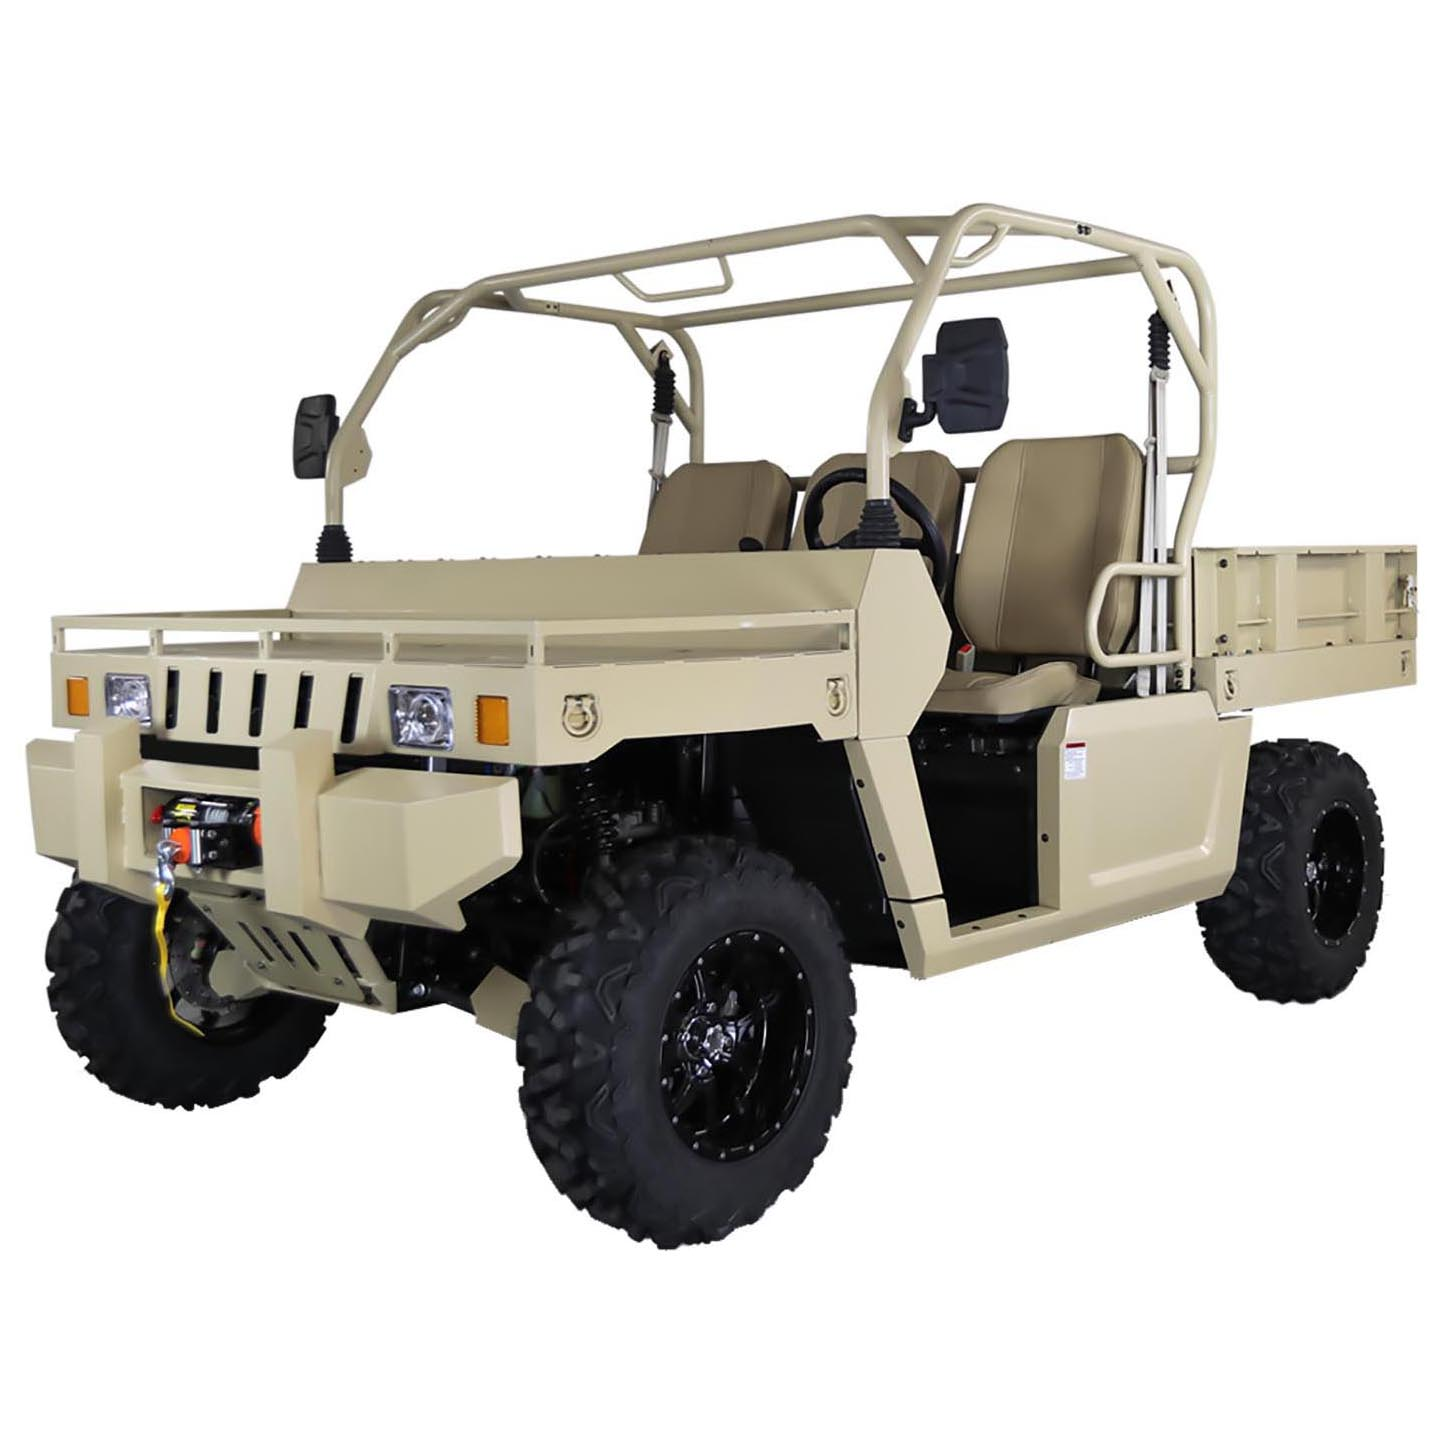 KXU-10 WARRIOR UTV 800CC 4X4